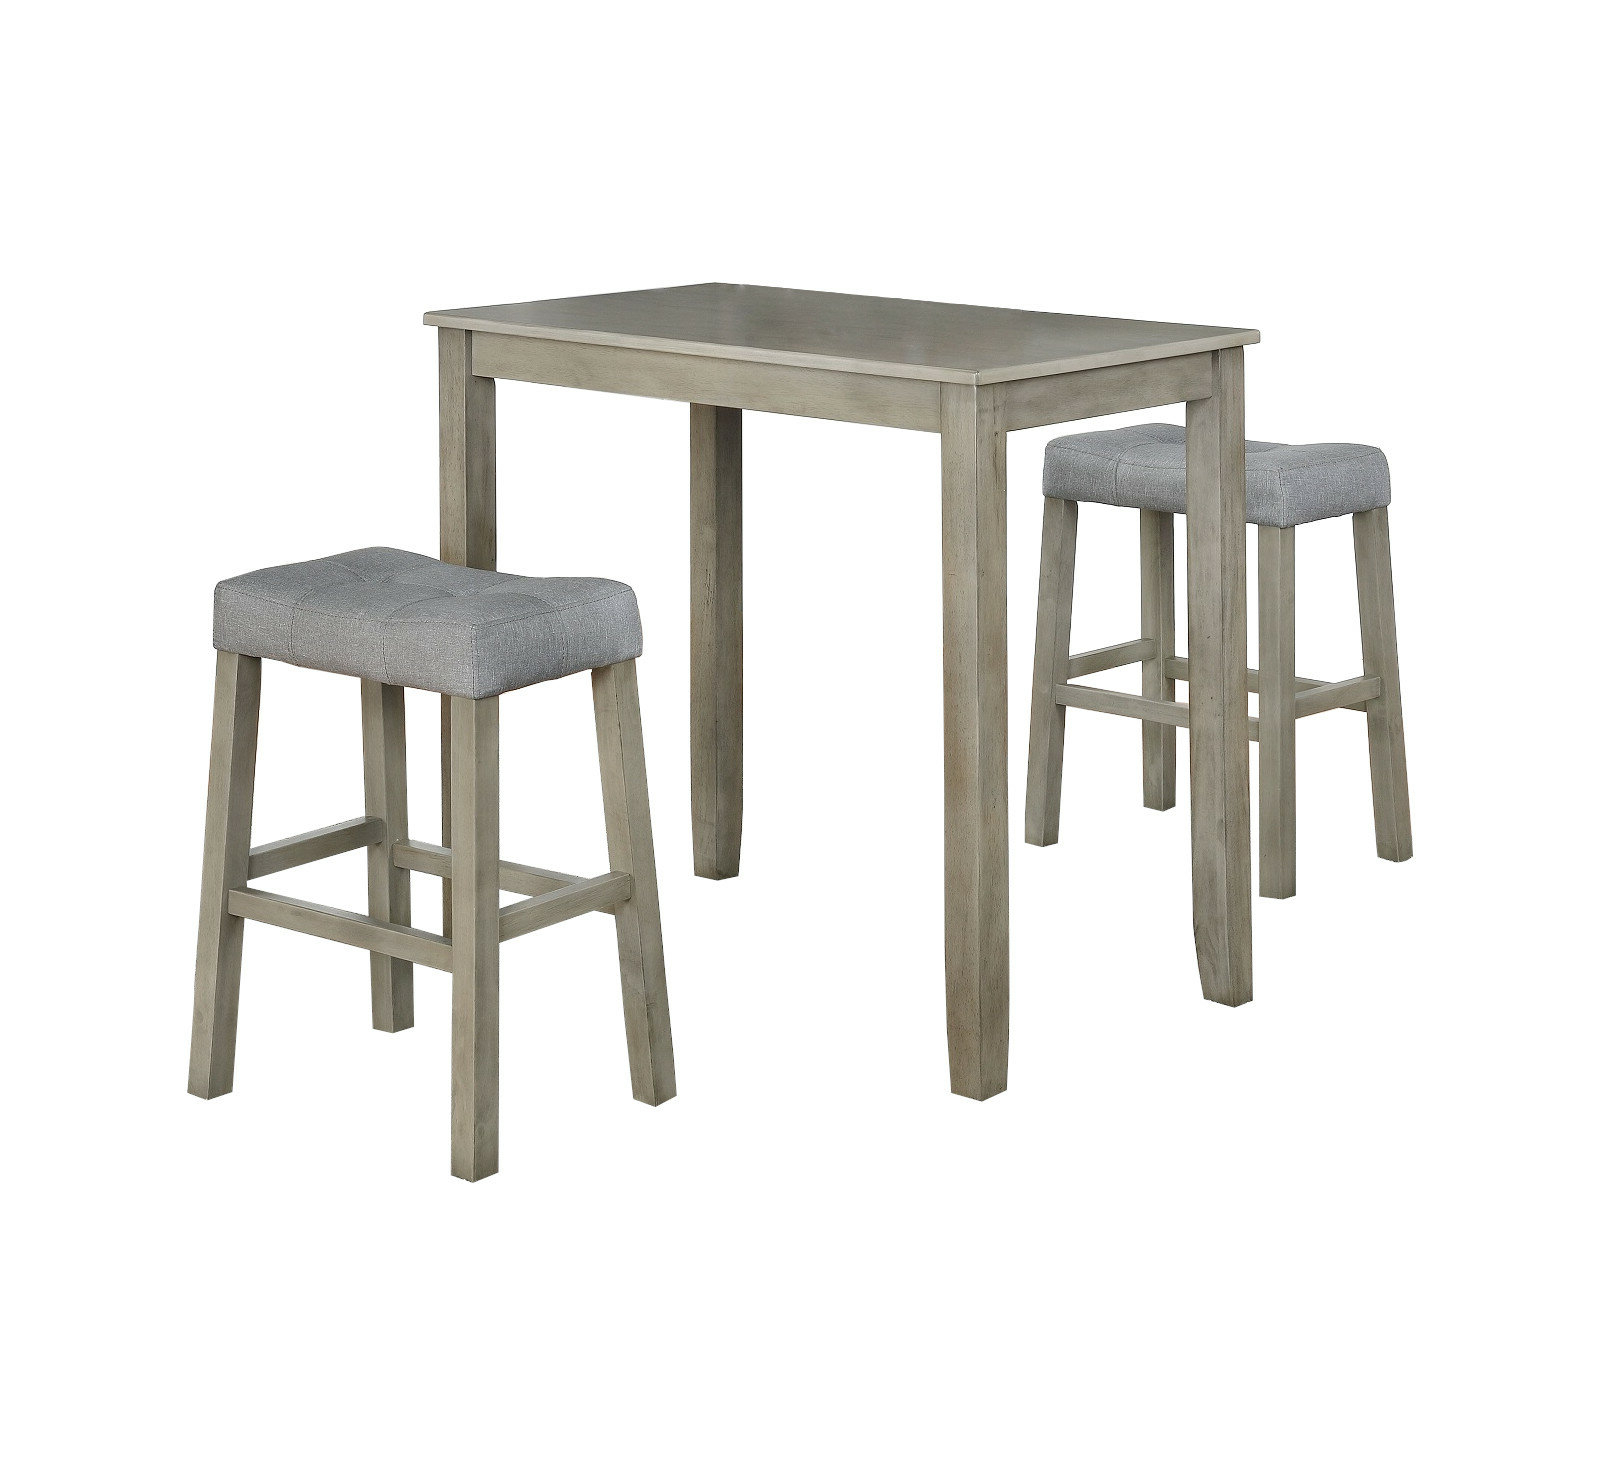 Nutter 3 Piece Dining Sets for Trendy Ophelia & Co. Alejandra 3 Piece Solid Wood Dining Set & Reviews